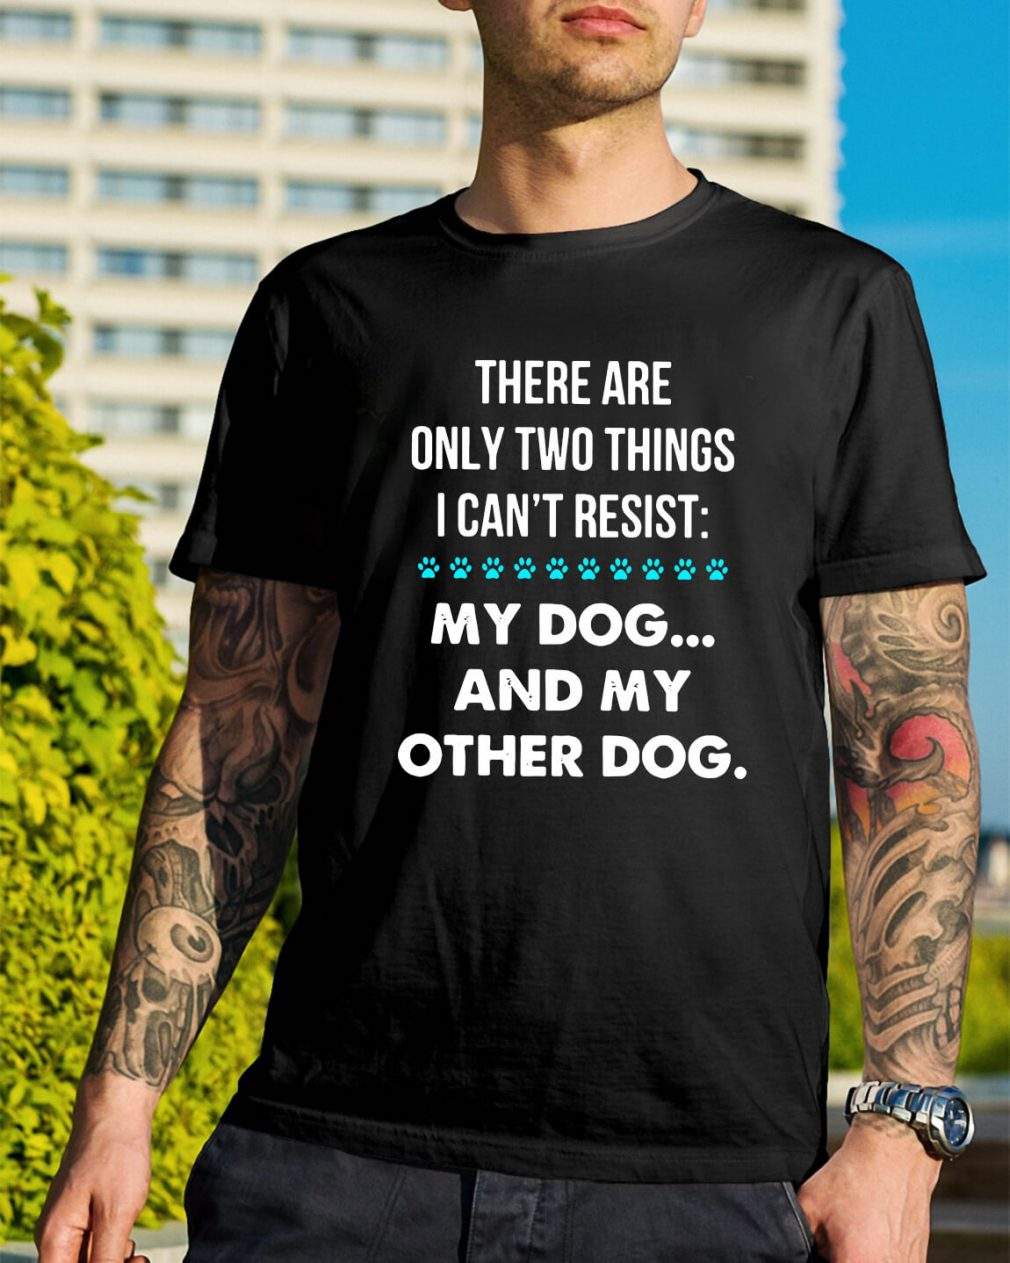 There are only two things I can't resist my dog and my other dog shirt